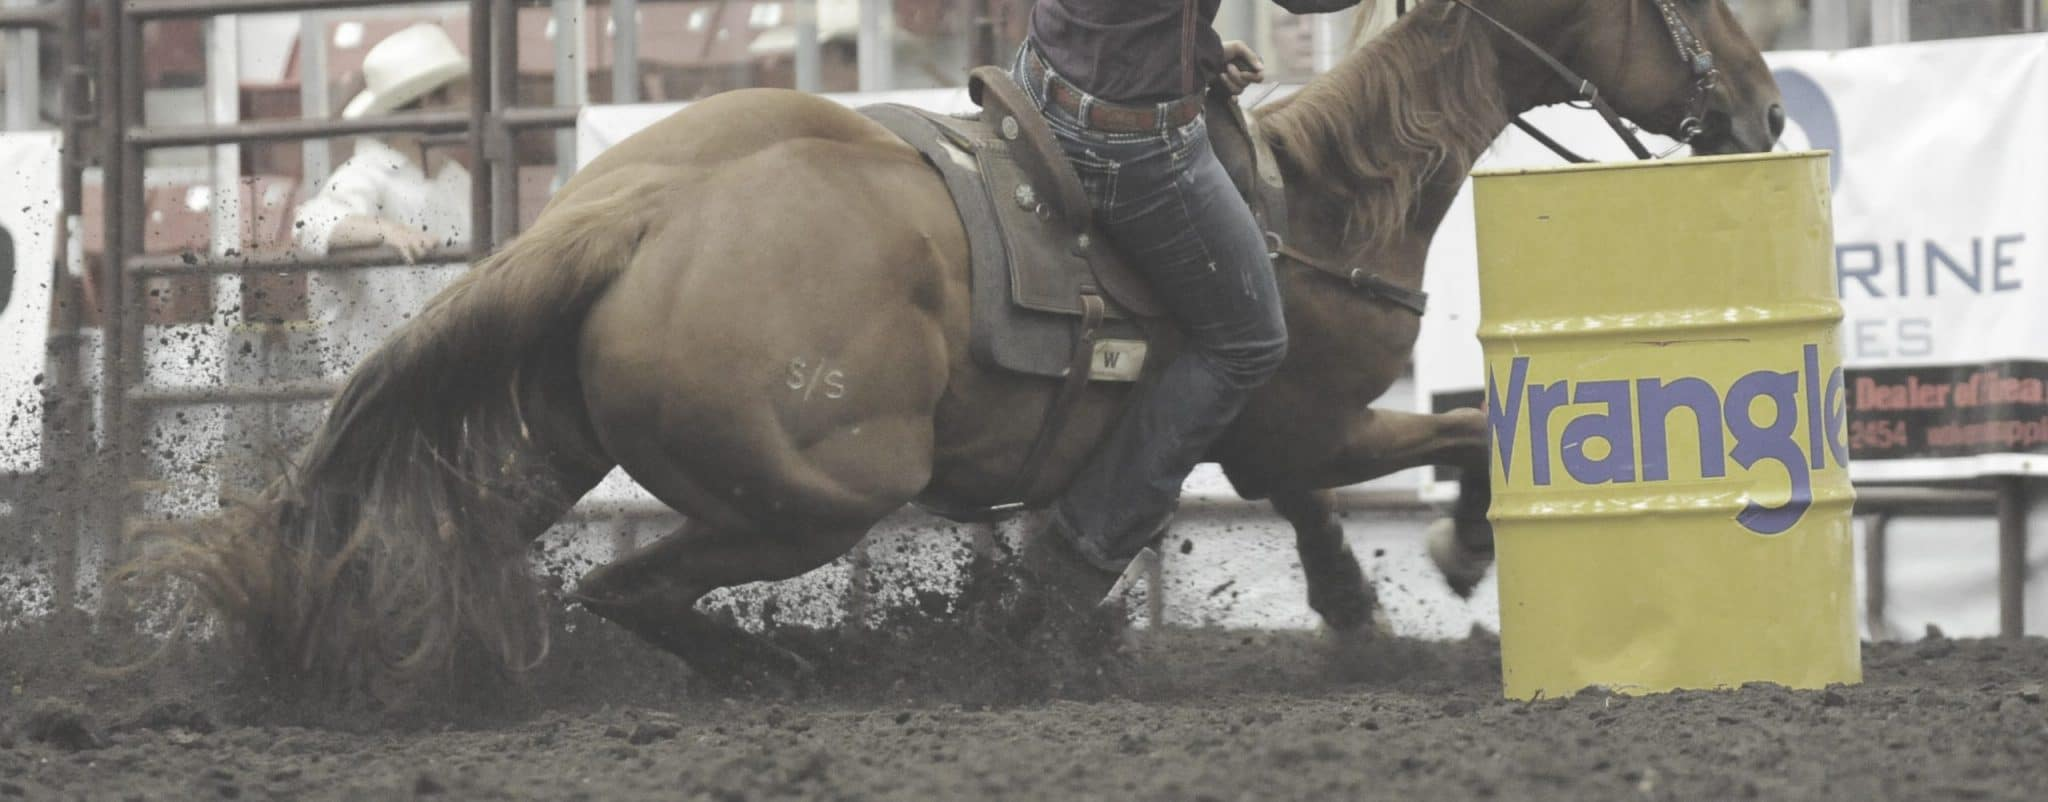 The Performance Horse - BarrelRacingCover-scaled.jpg